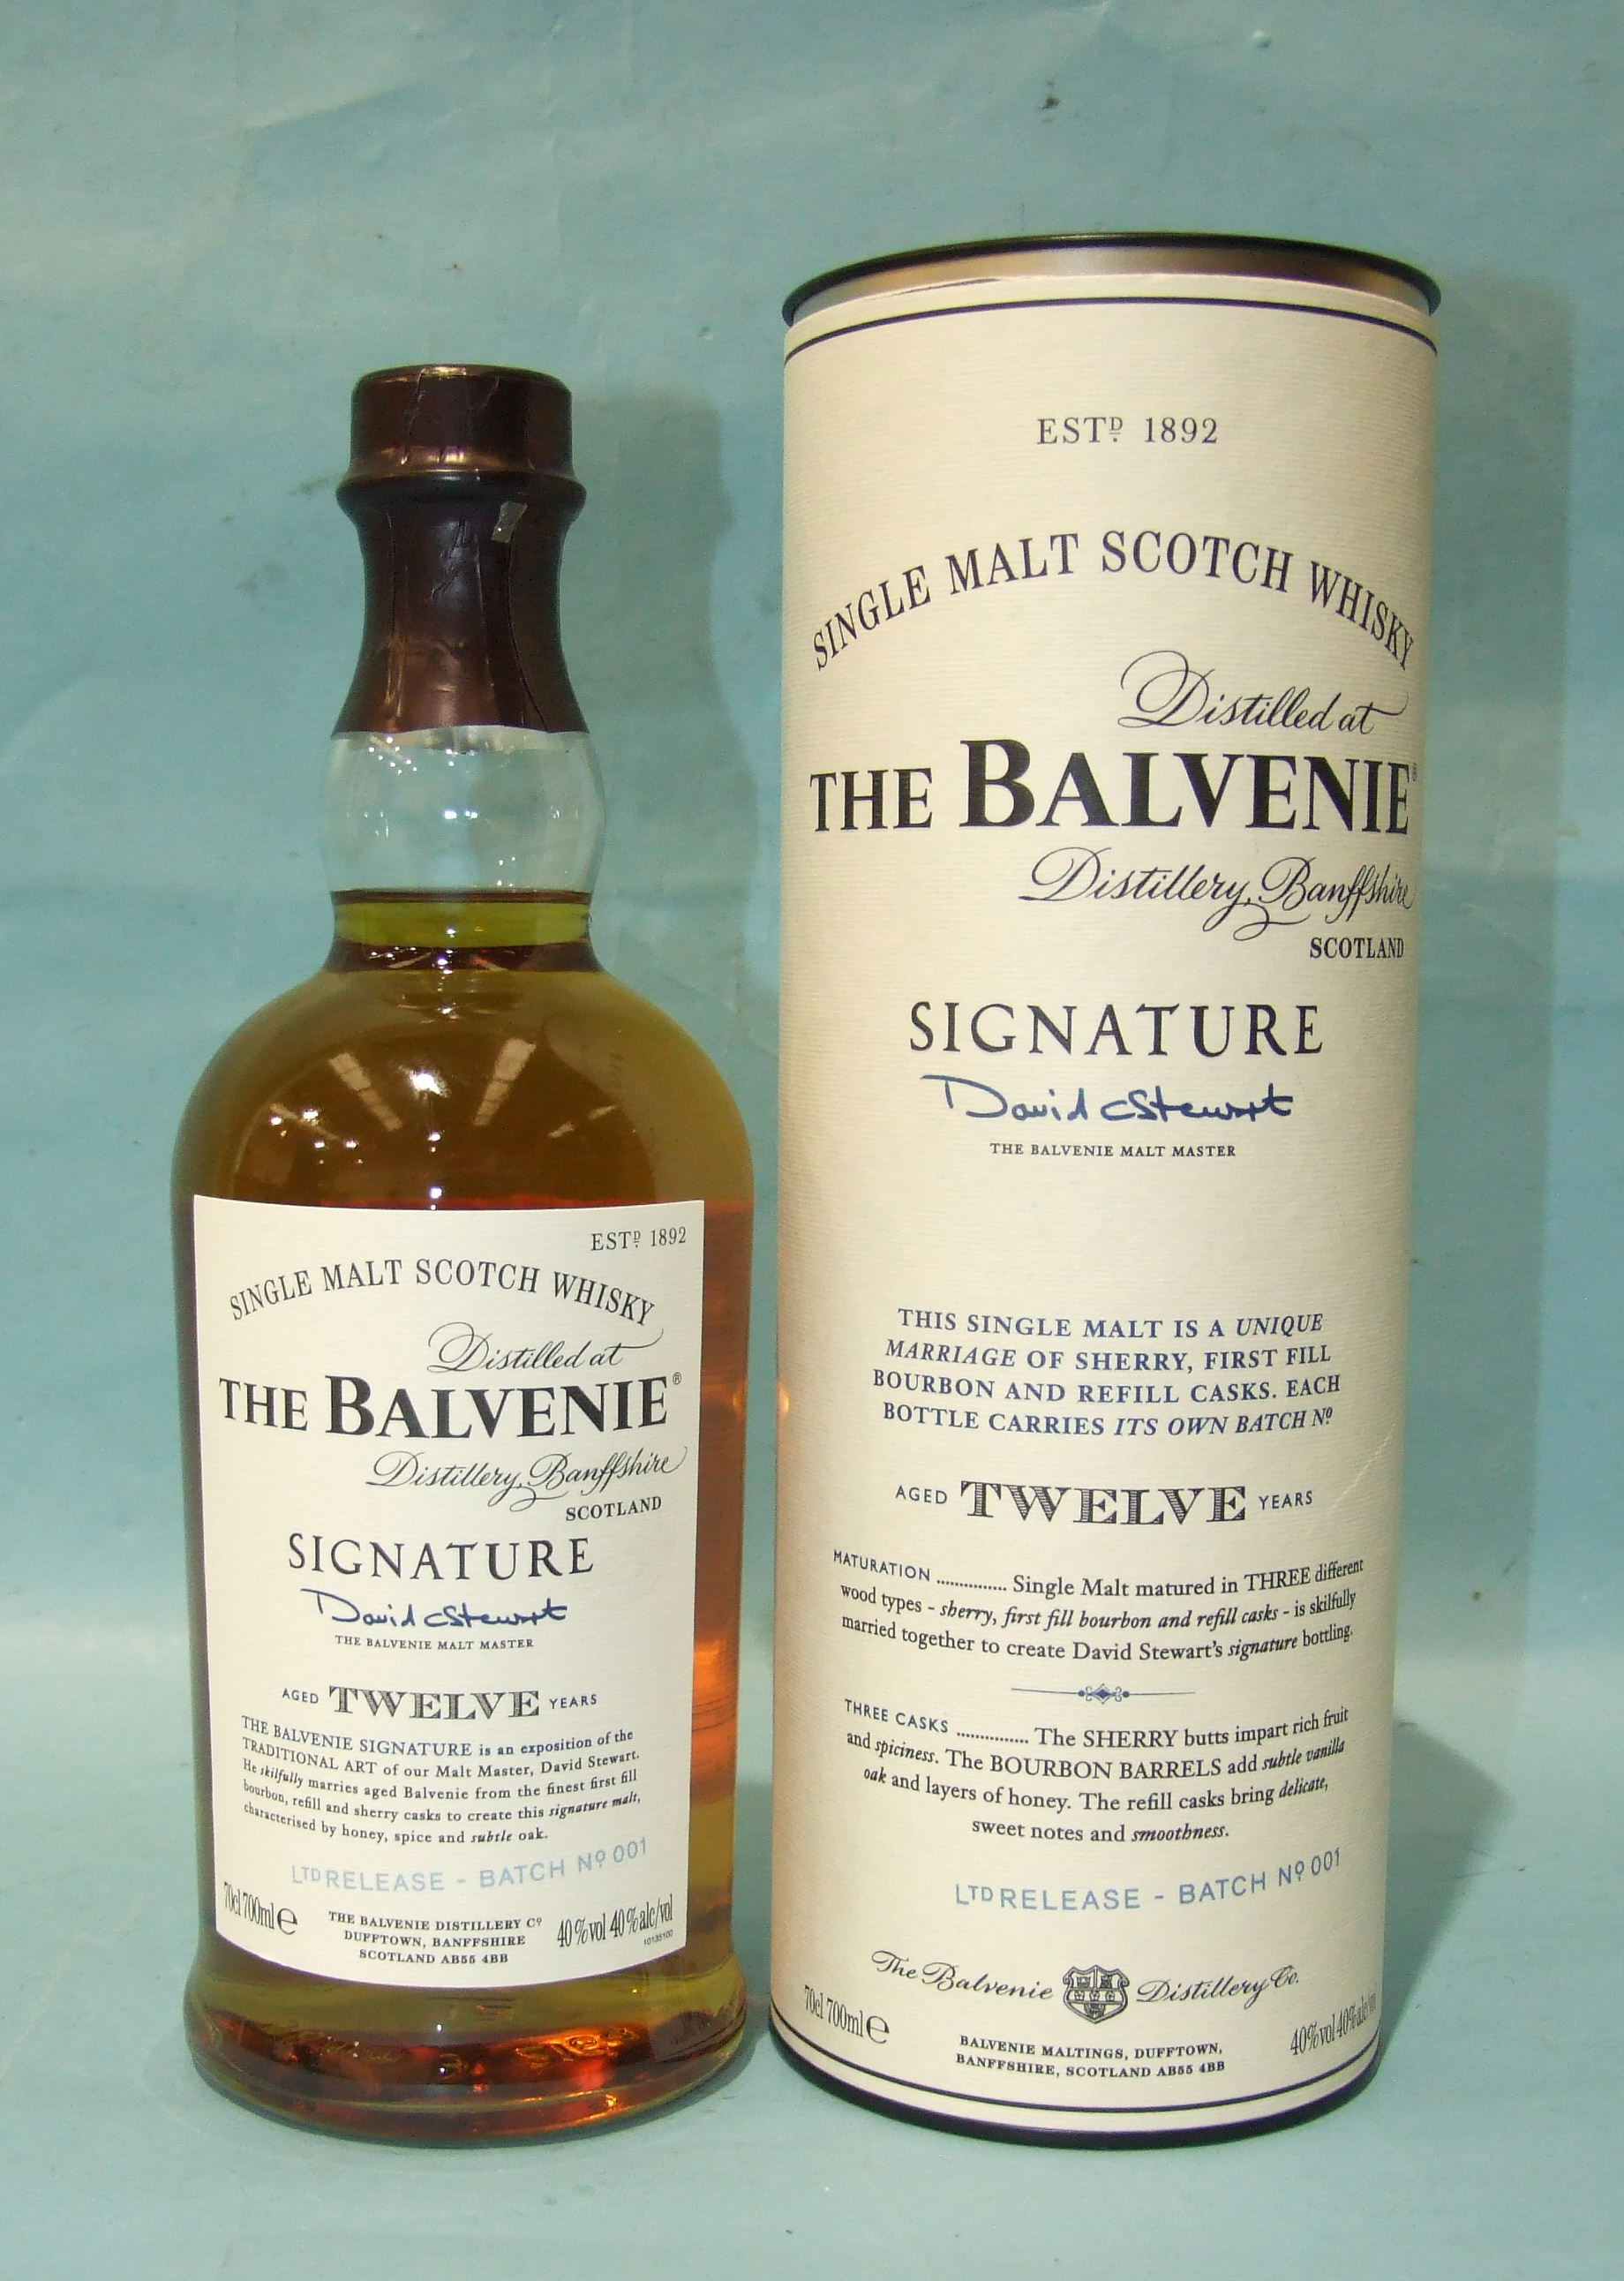 Lot 43 - The Balvenie 12-year-old Signature Batch no.001 single malt whisky, in tube.